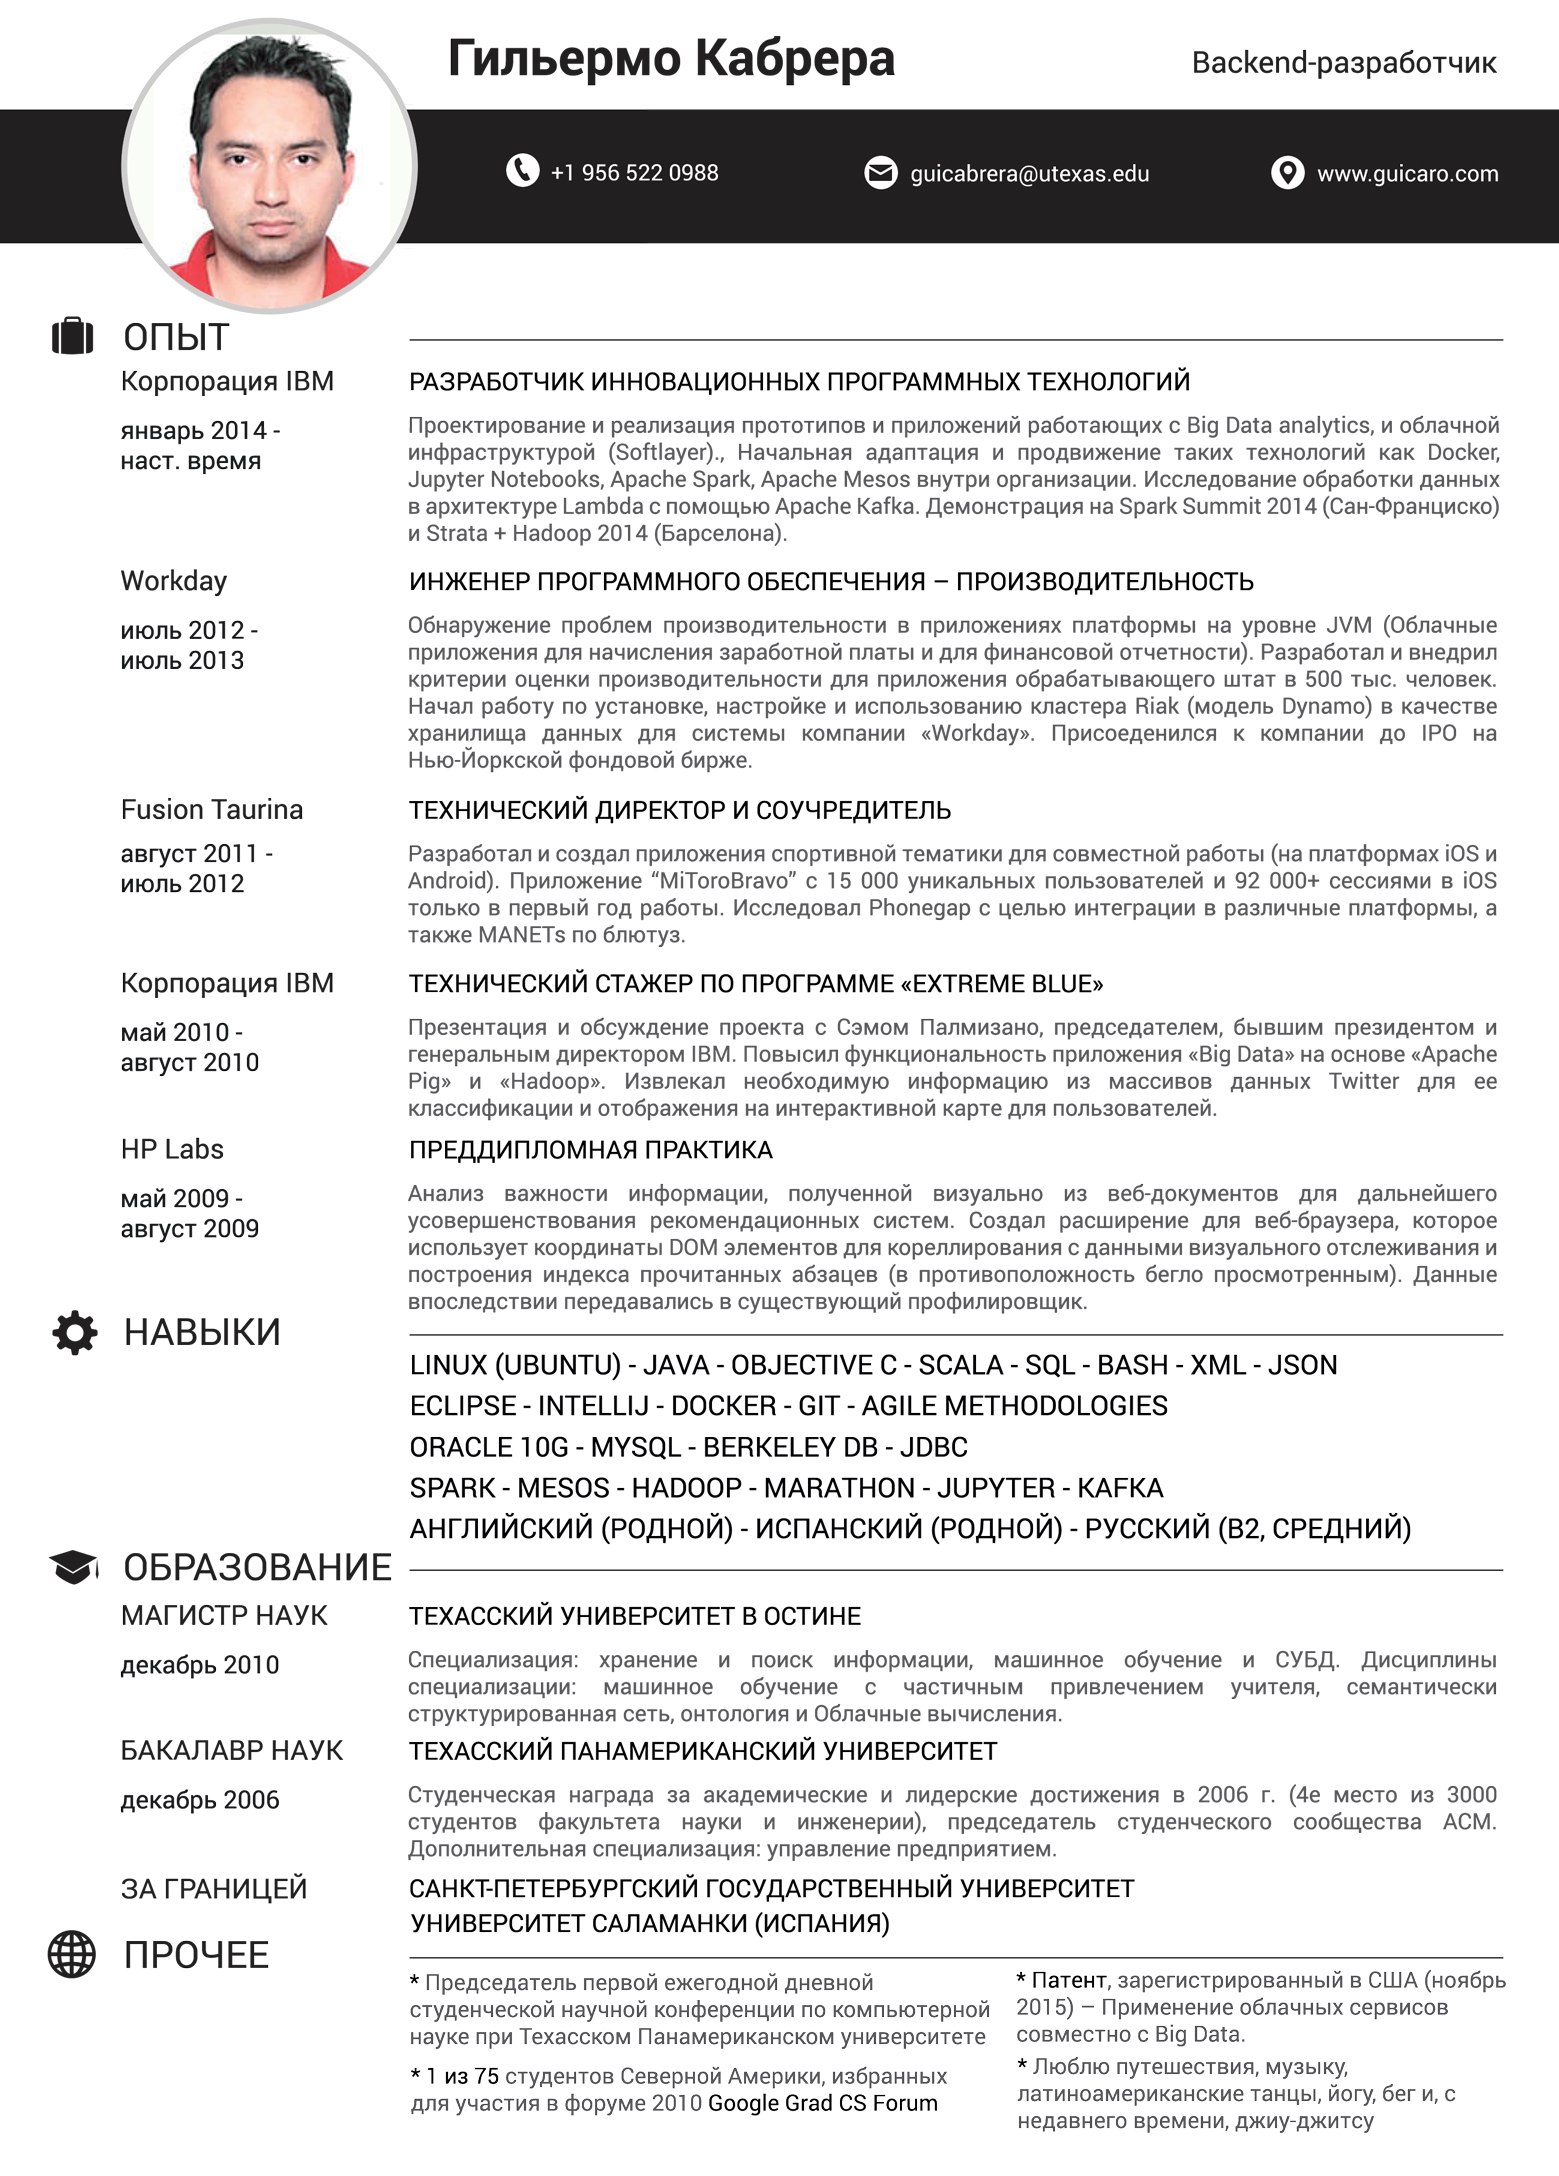 Russian | Phrases - Application | Résumé / CV